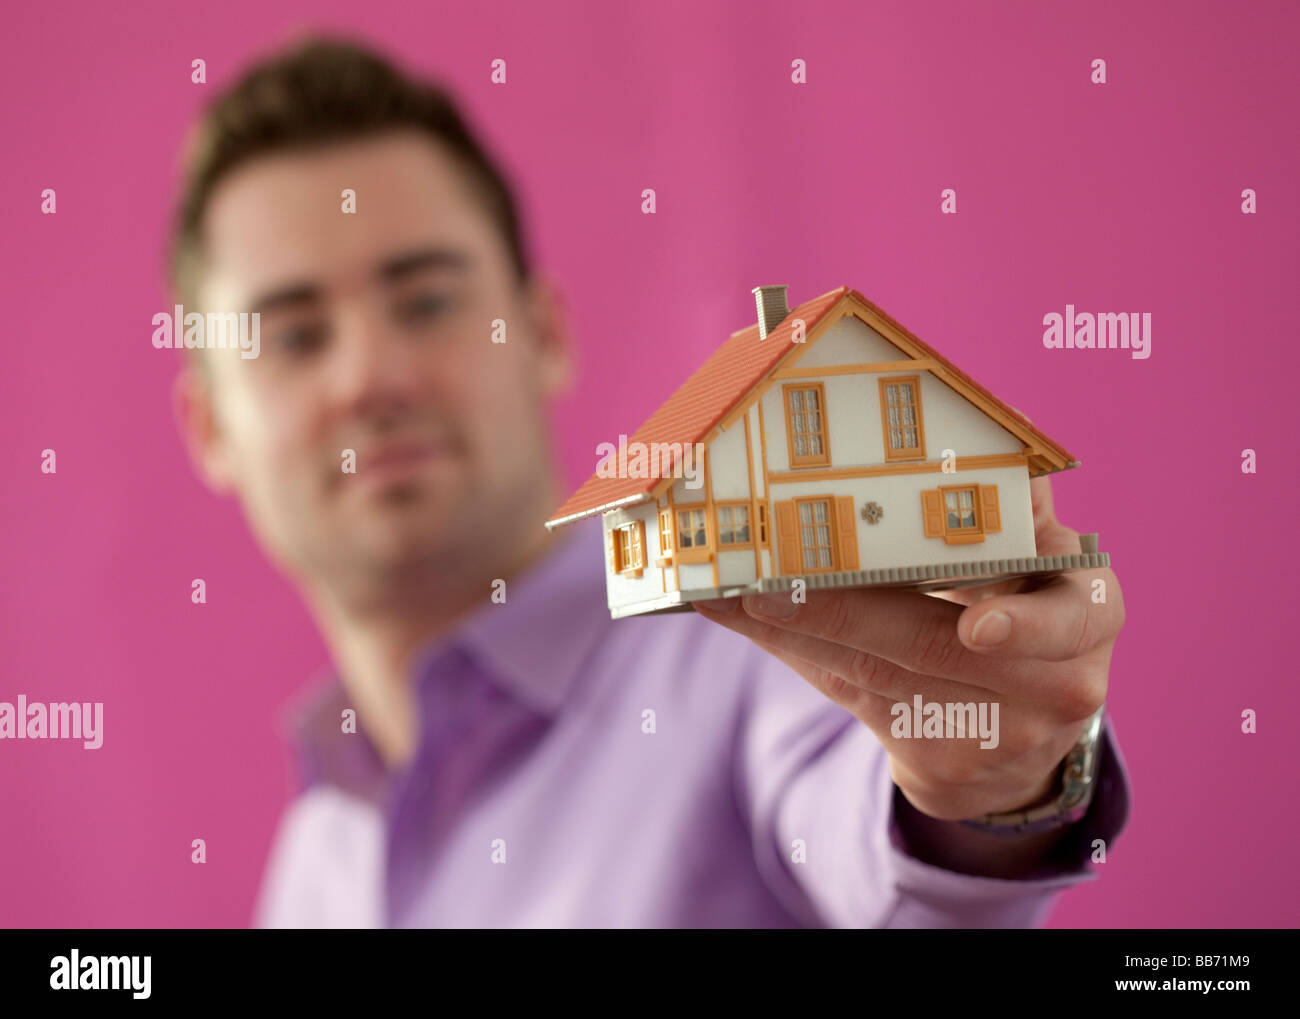 Young man holding a little house - Stock Image